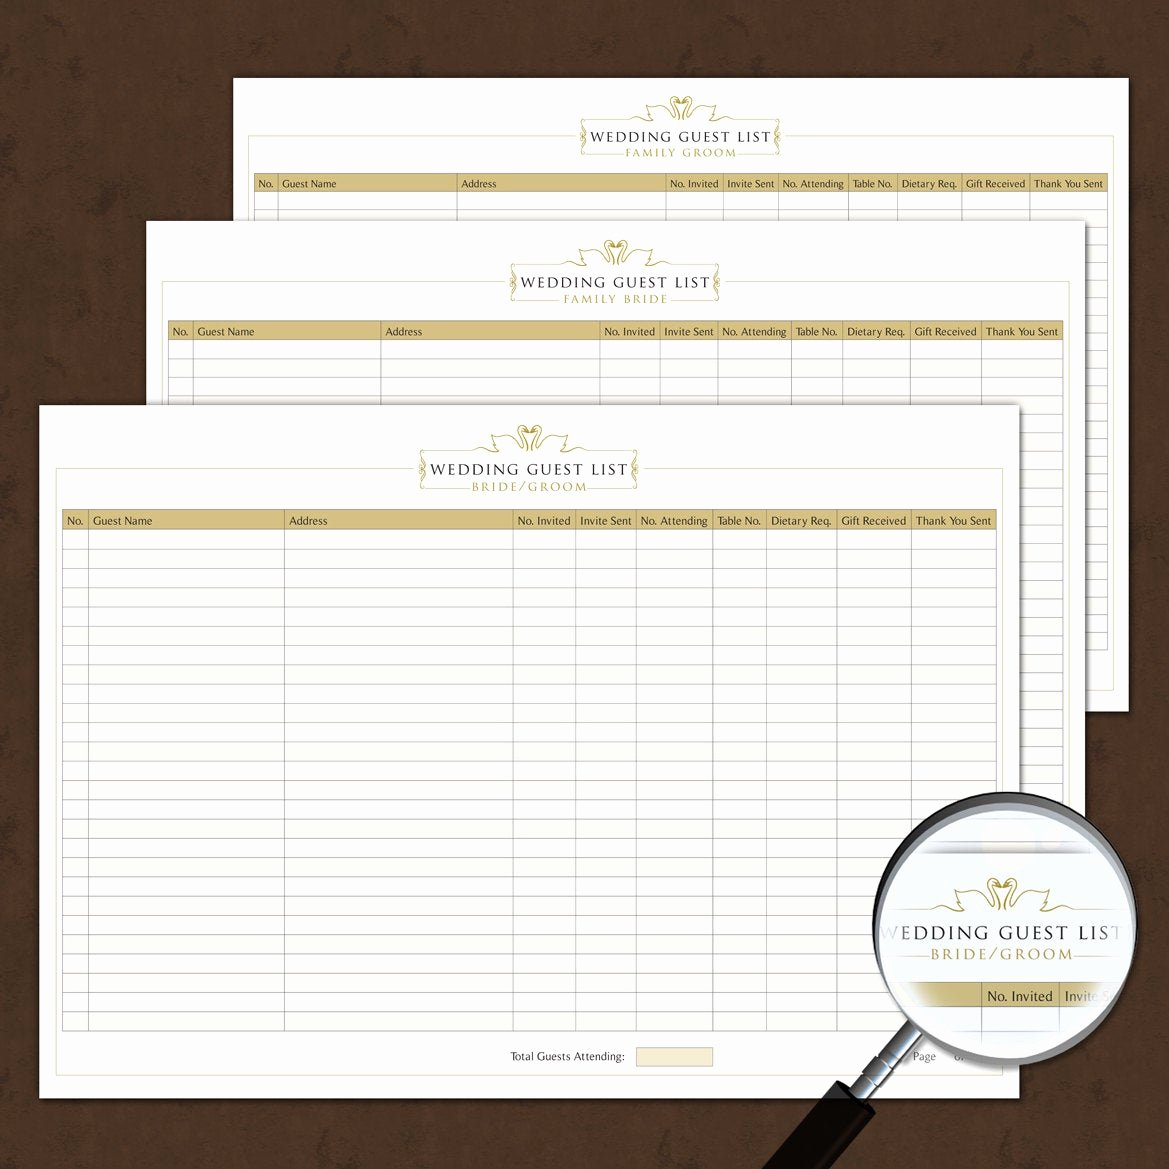 Wedding Guest List Pdf Luxury Wedding Guest List Template Interactive Printable & by